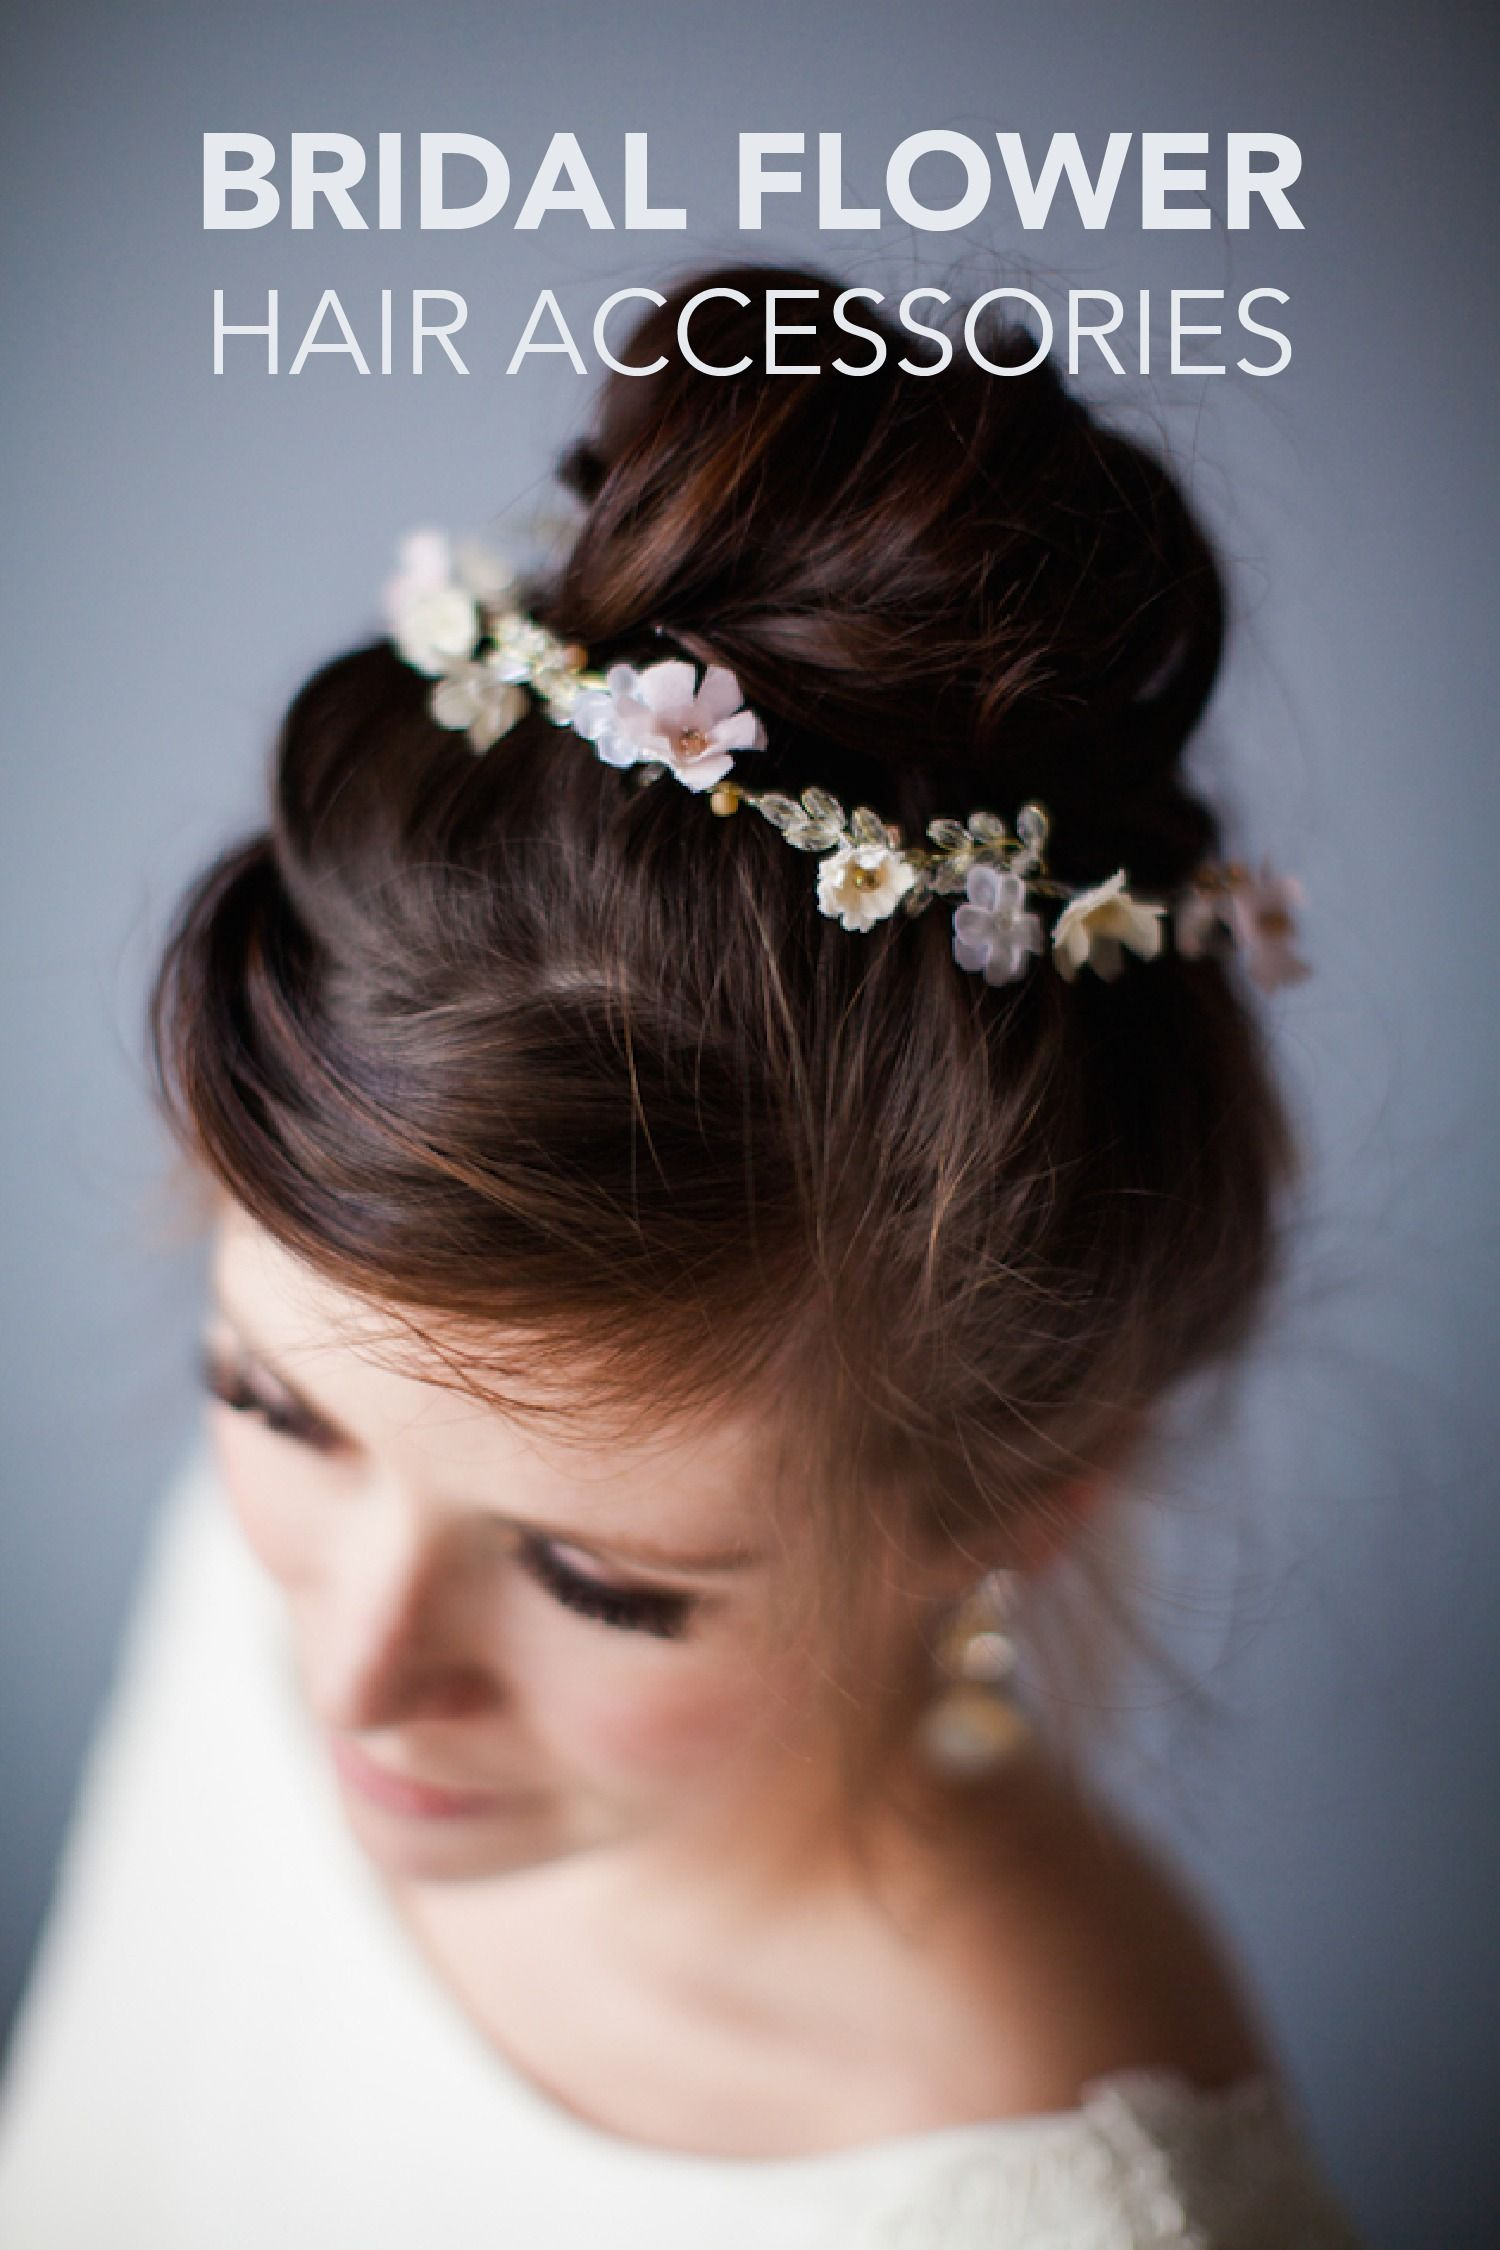 GORGEOUS BRIDAL HAIR ACCESSORIES FROM EMMA GRACE, WITH TOP TIPS ON CHOOSING THE PERFECT PIECES